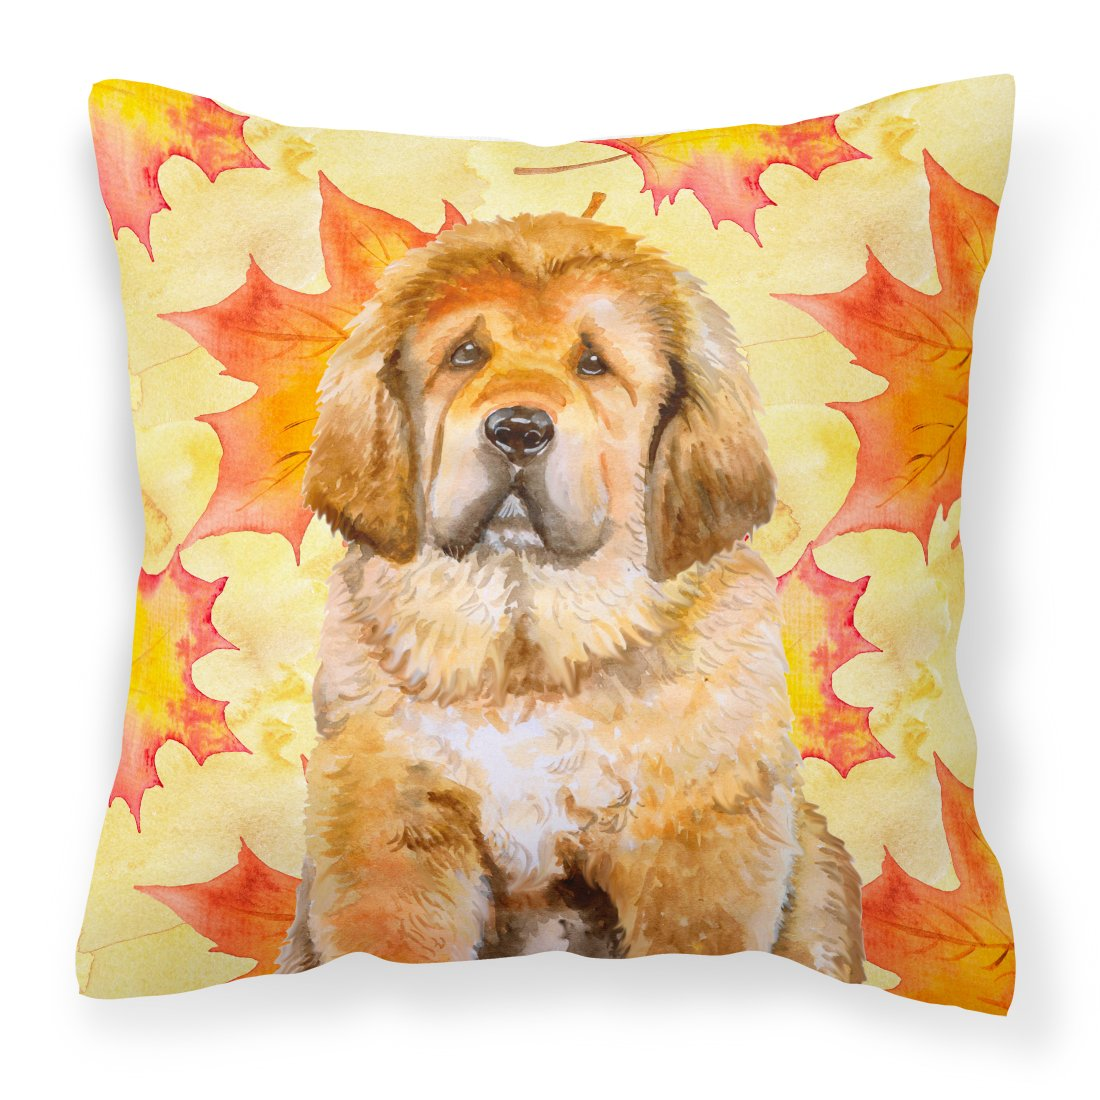 Tibetan Mastiff Fall Fabric Decorative Pillow BB9982PW1818 by Caroline's Treasures